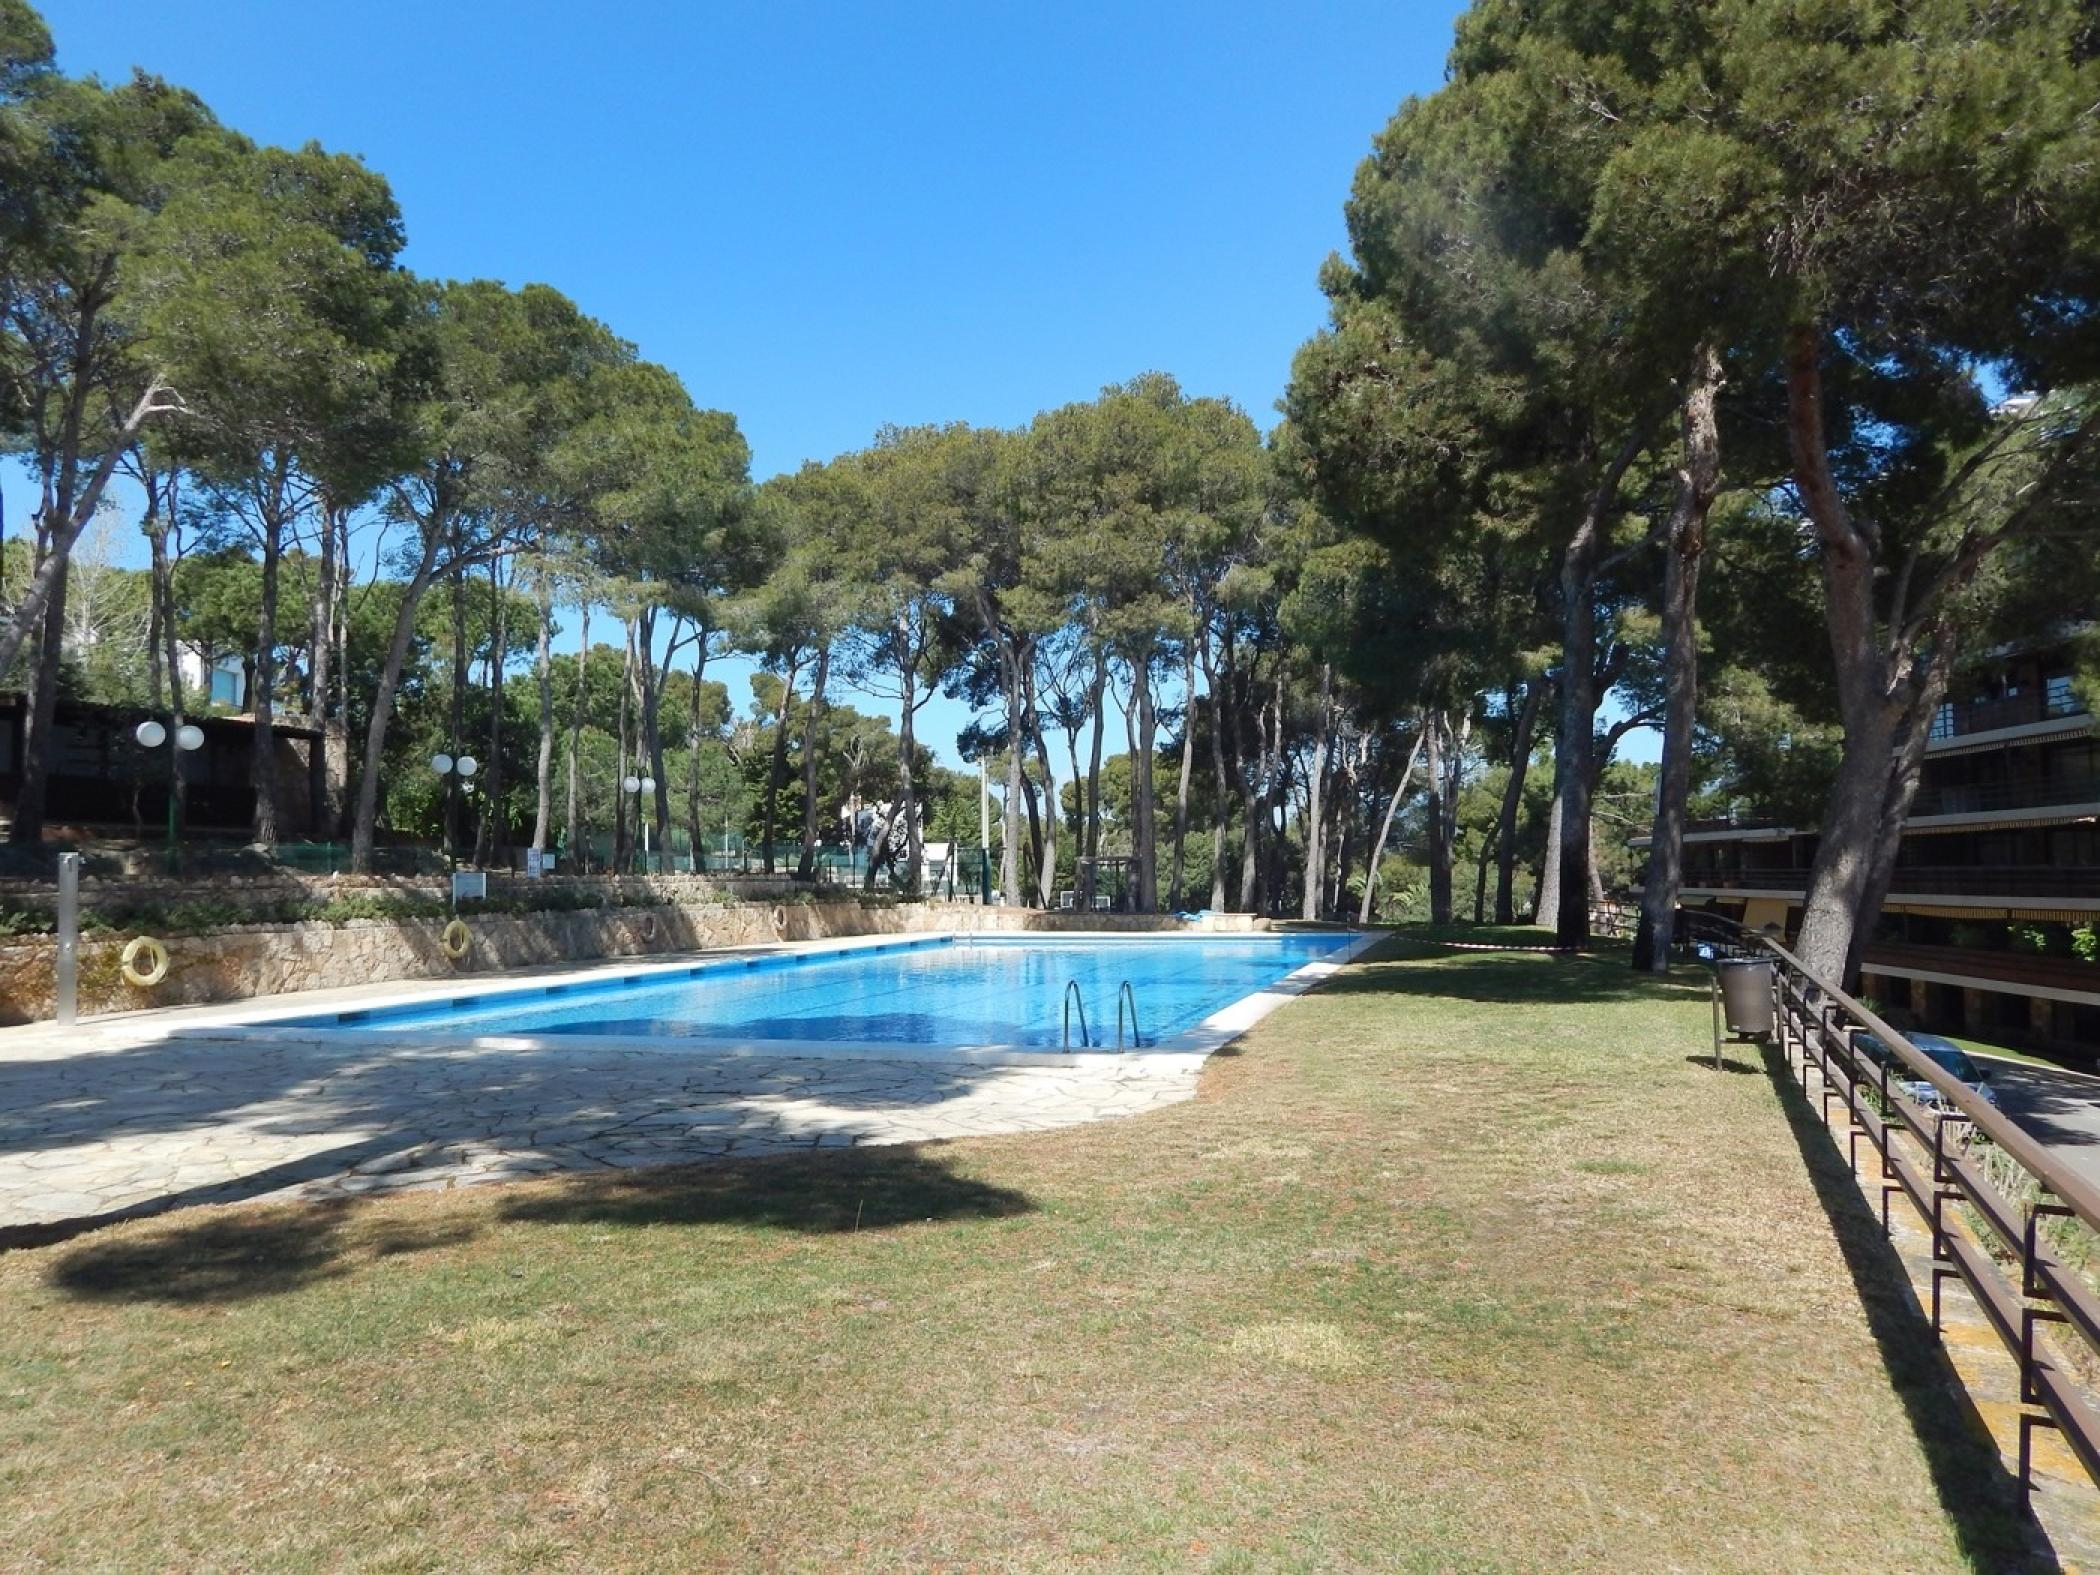 Rent Apartment with Swimming pool in Sant Antoni de Calonge - Eden Mar VIII - 21